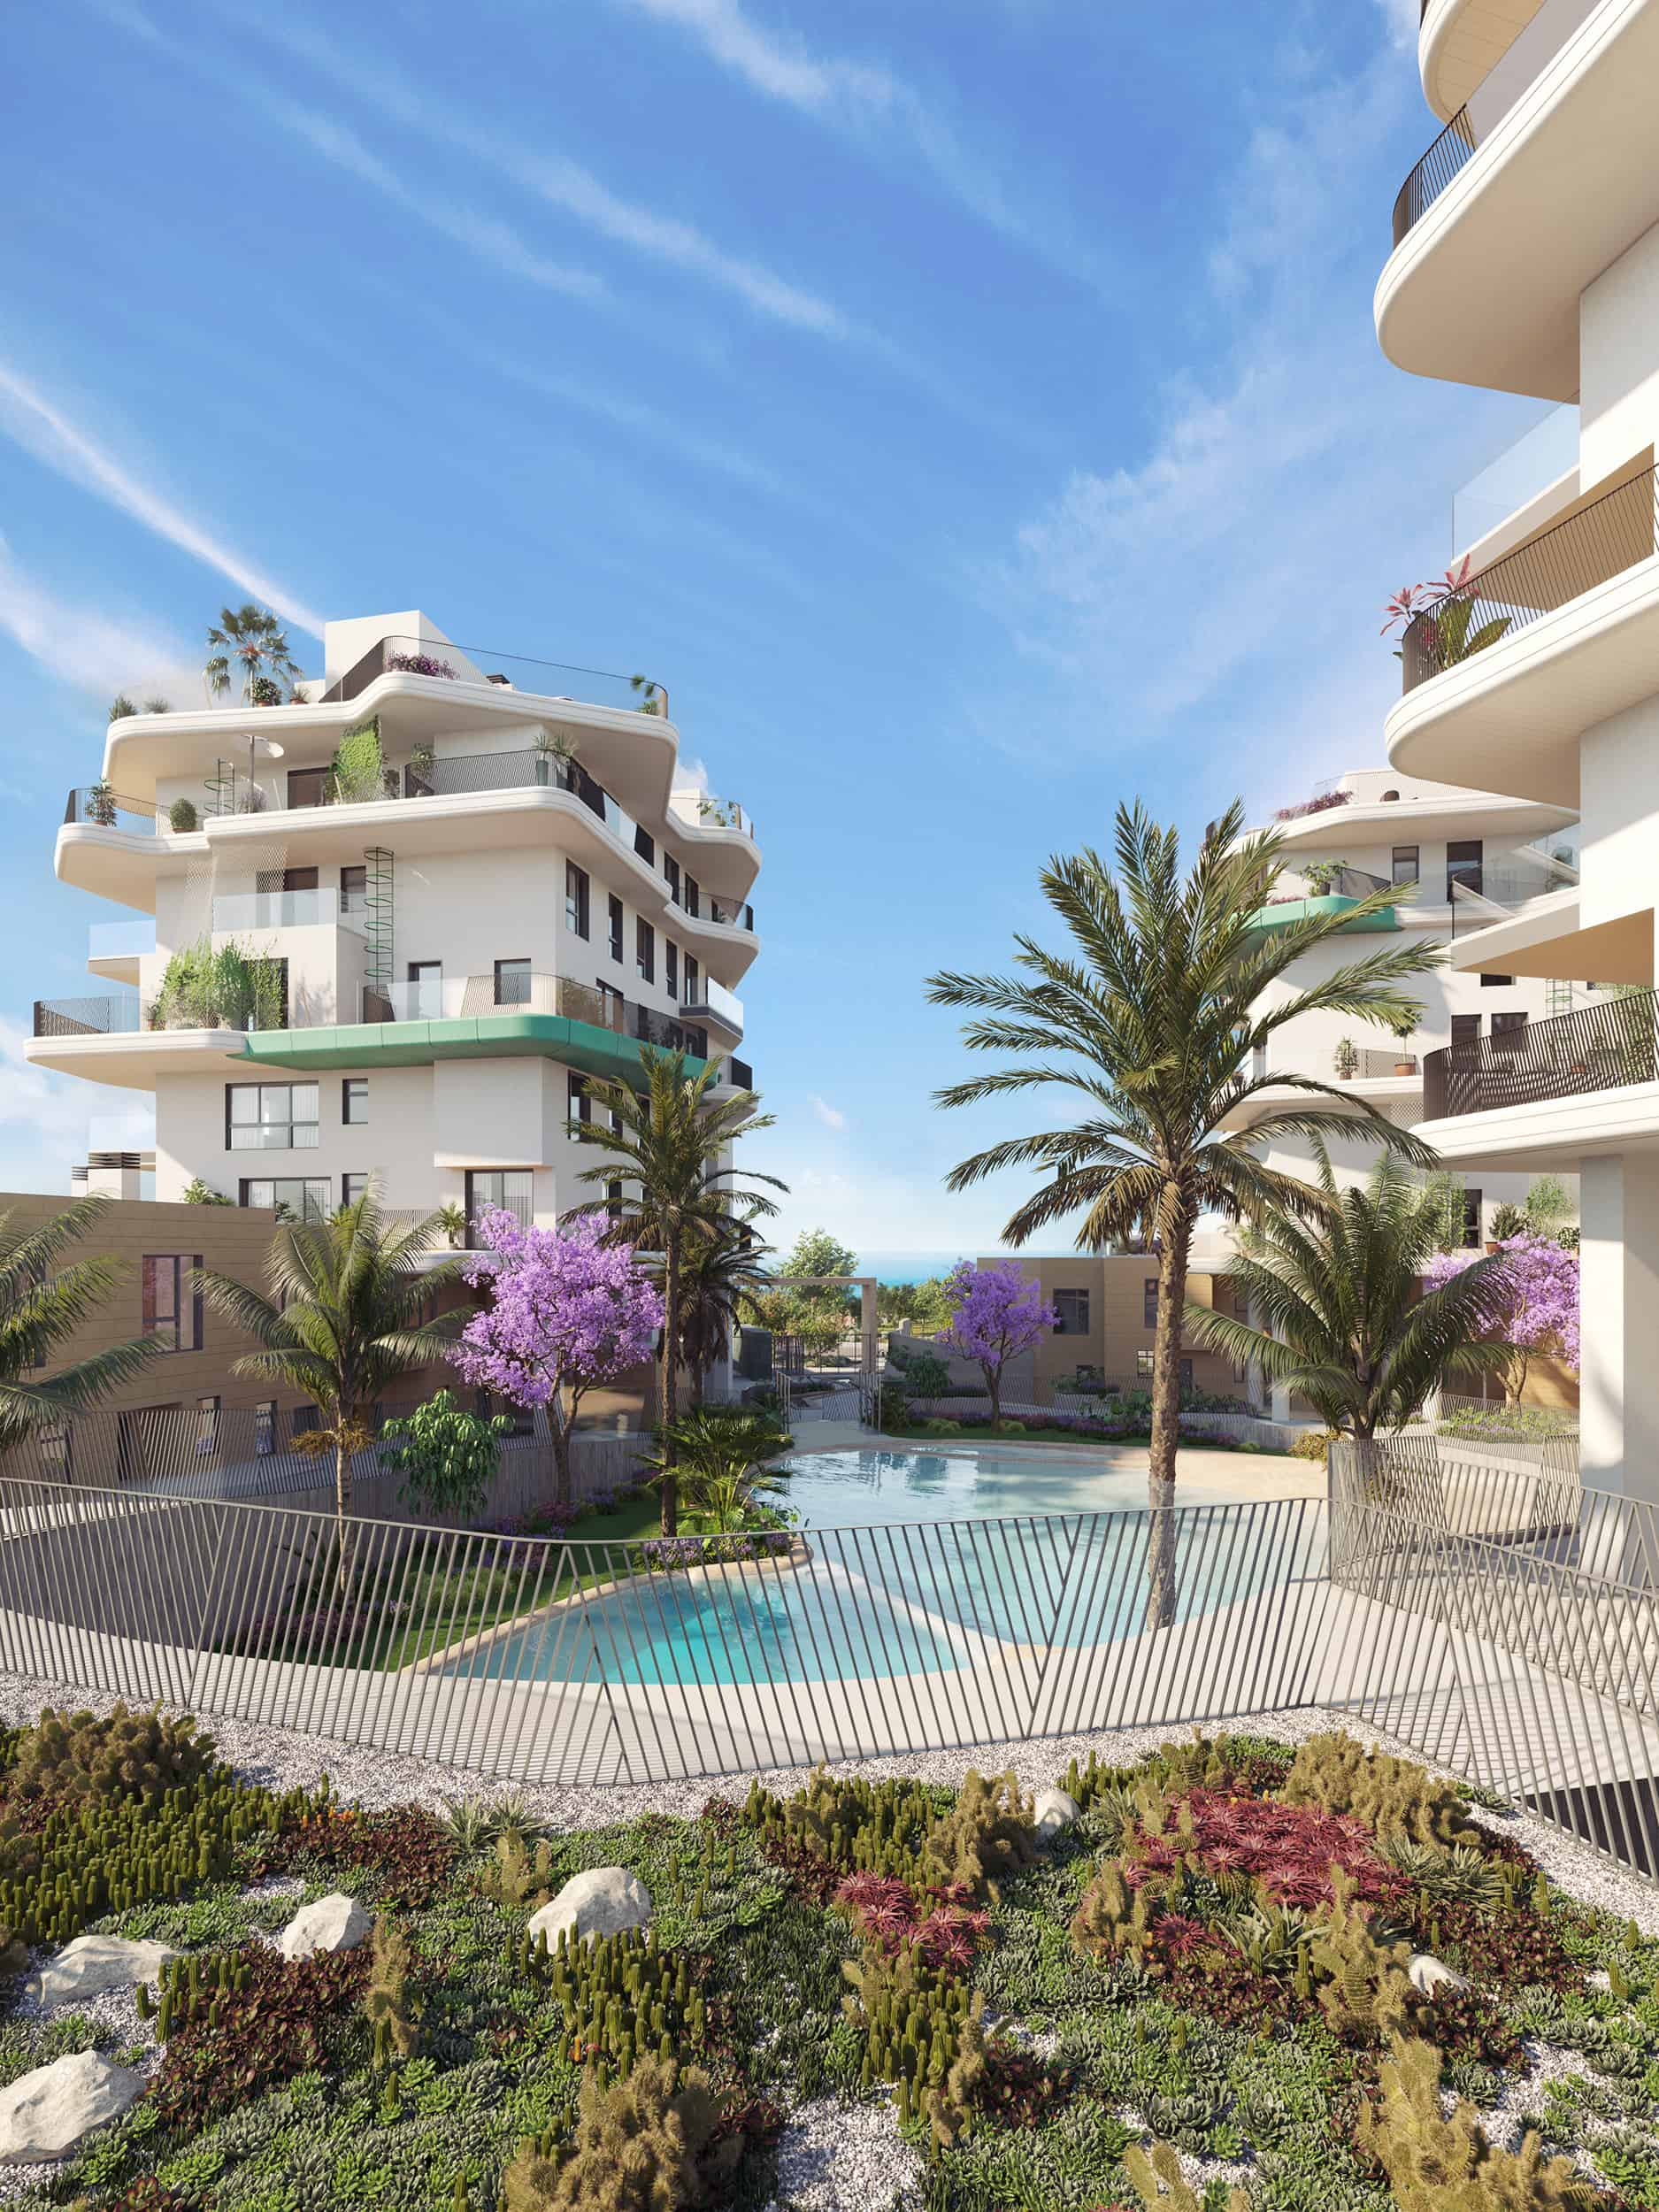 Ref:RH-11076-property Apartment For Sale in Villajoyosa